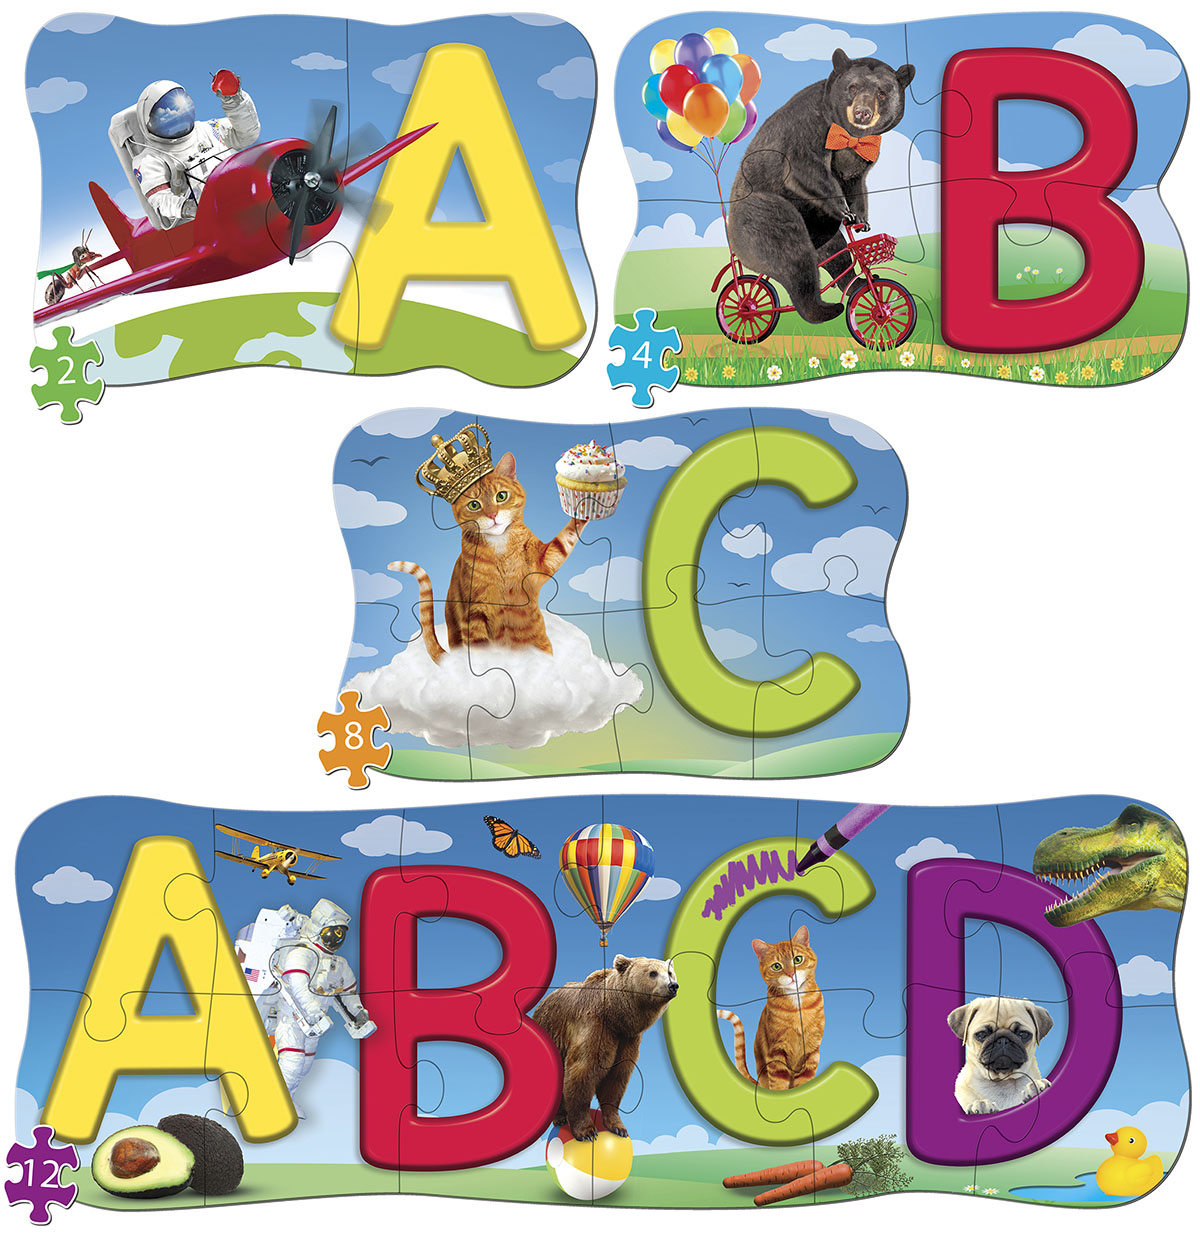 ABCs 4 Pack Puzzle Educational Jigsaw Puzzle